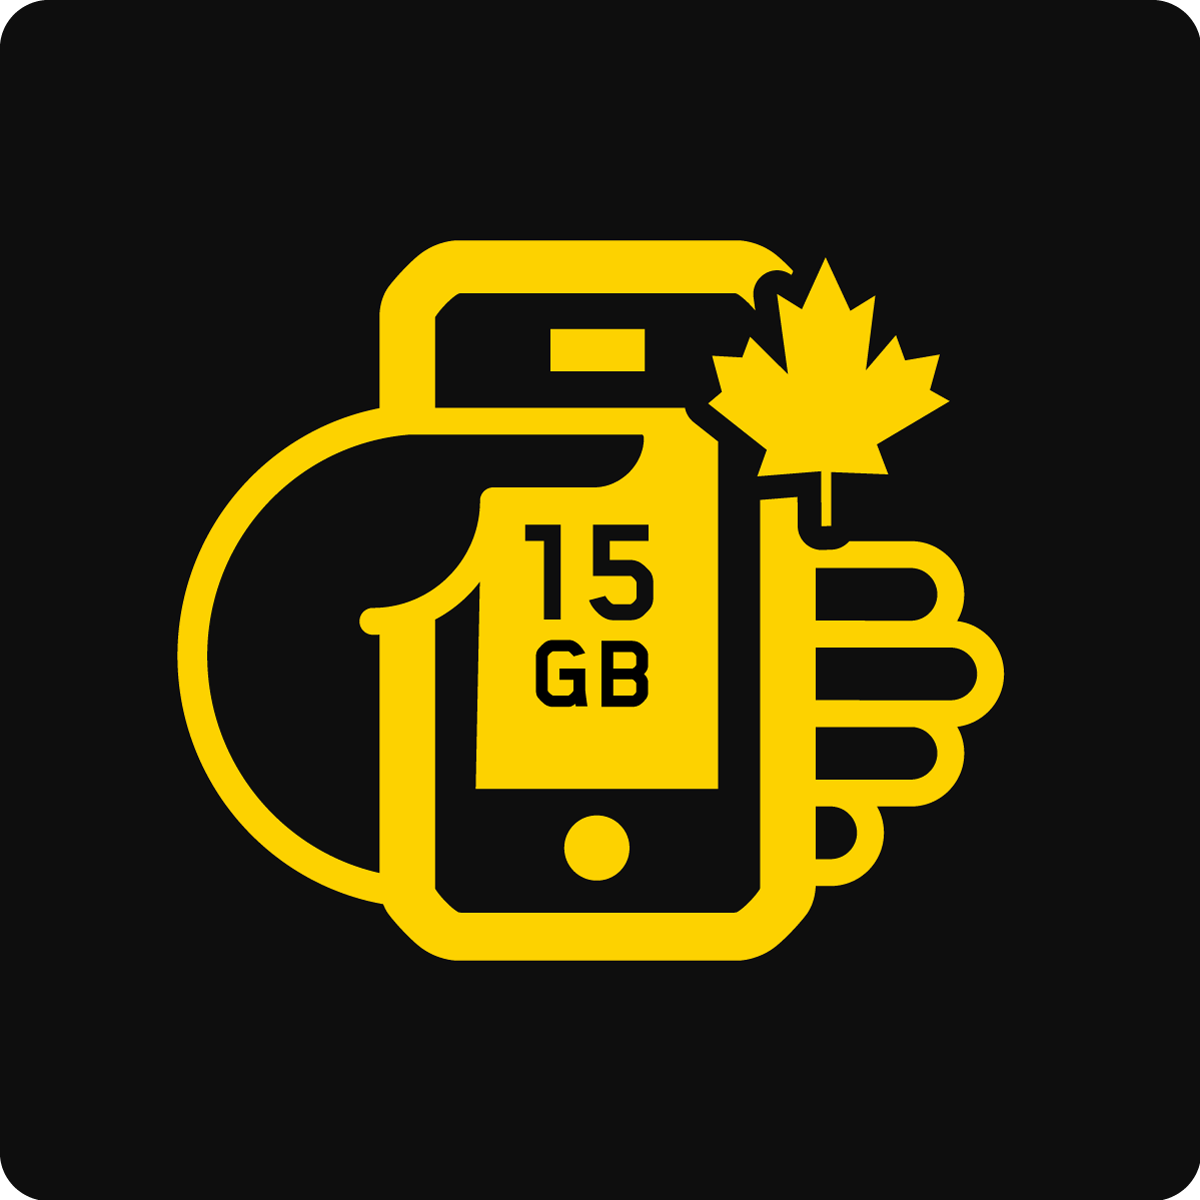 Bring Your Own Device Canada 15GB Mobile plan